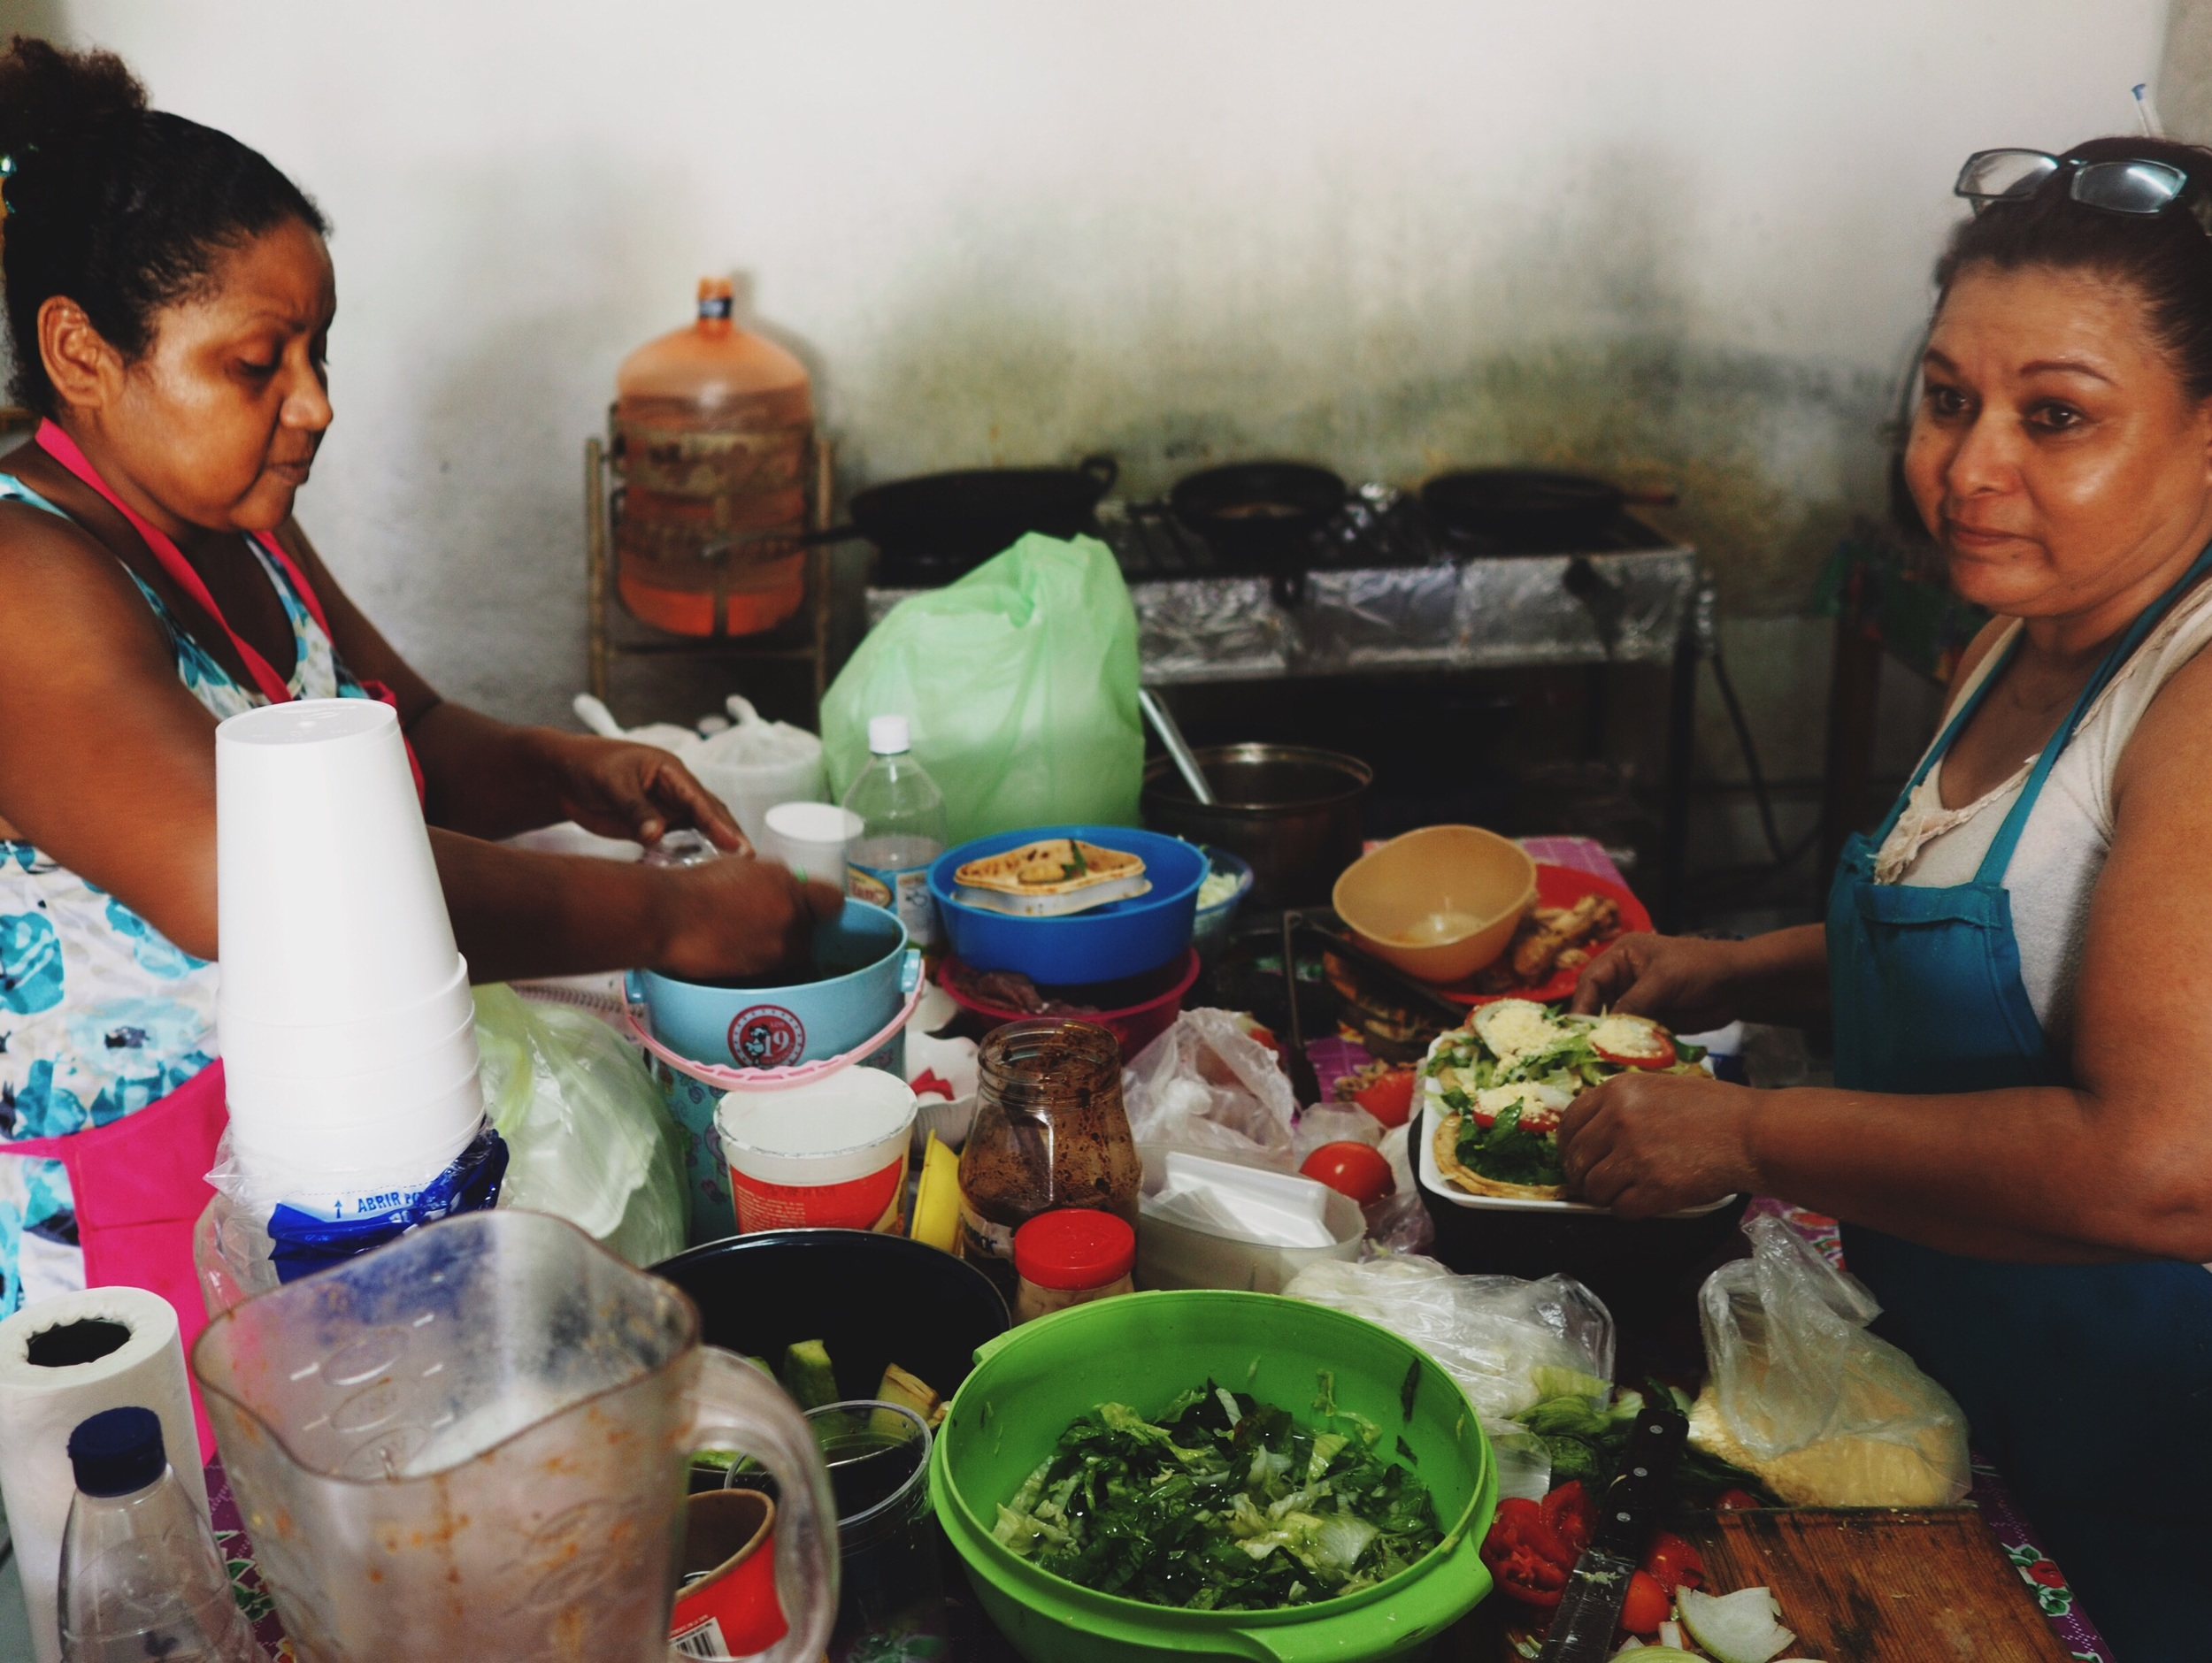 The wonderful cooks at a Cocina Economica where a construction worker bought us lunch